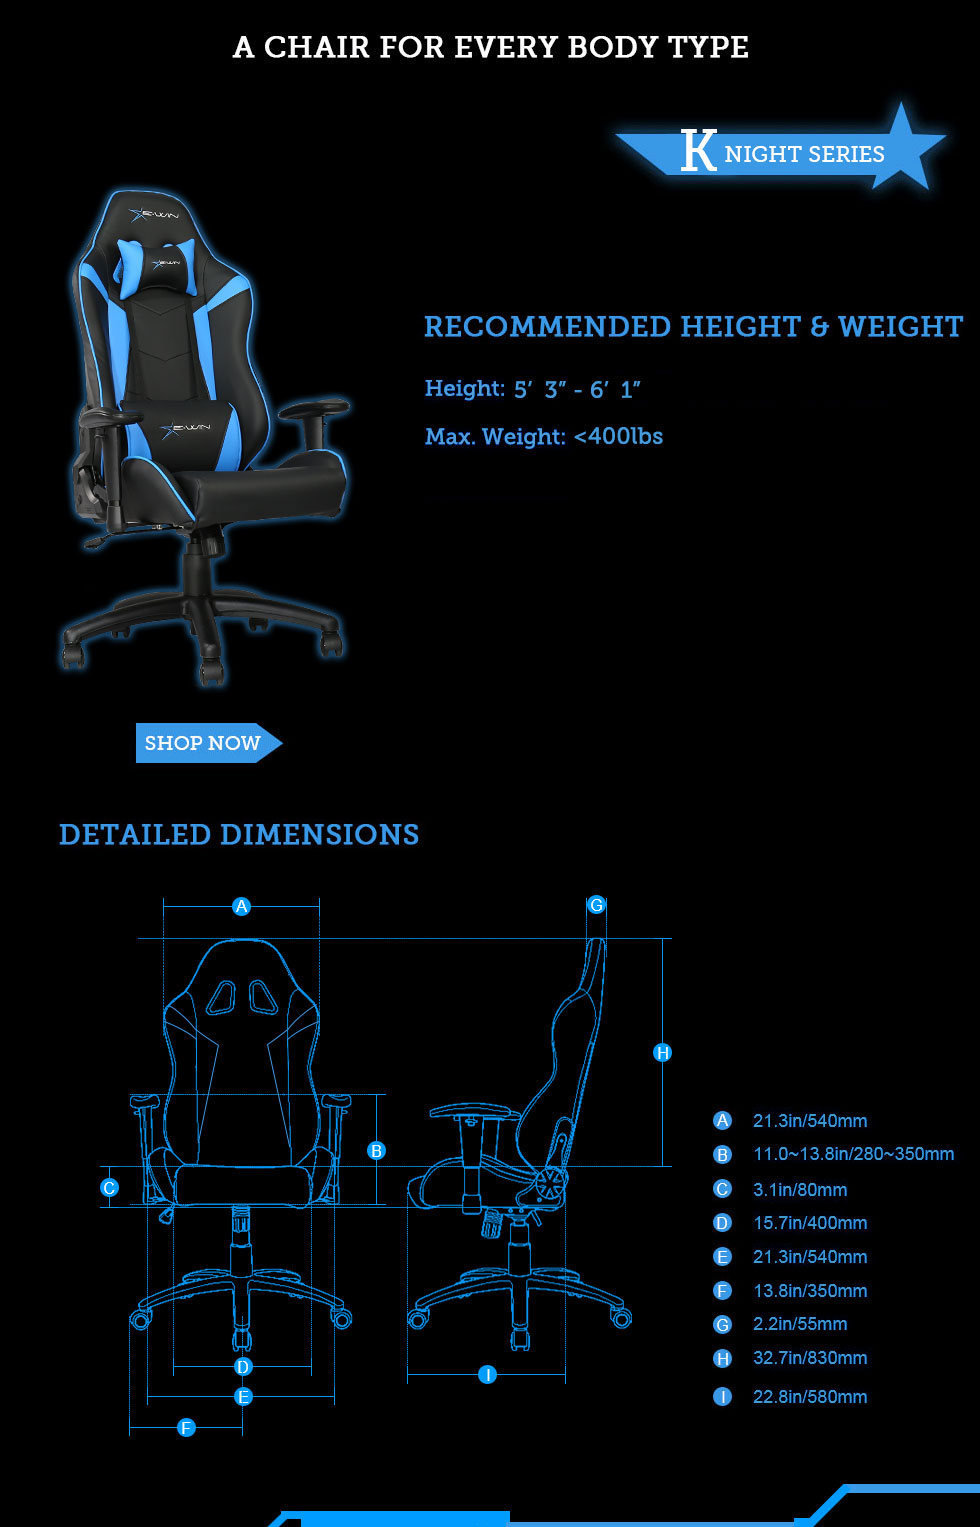 Dimensions of E-WIN Knight Series Gaming Chairs